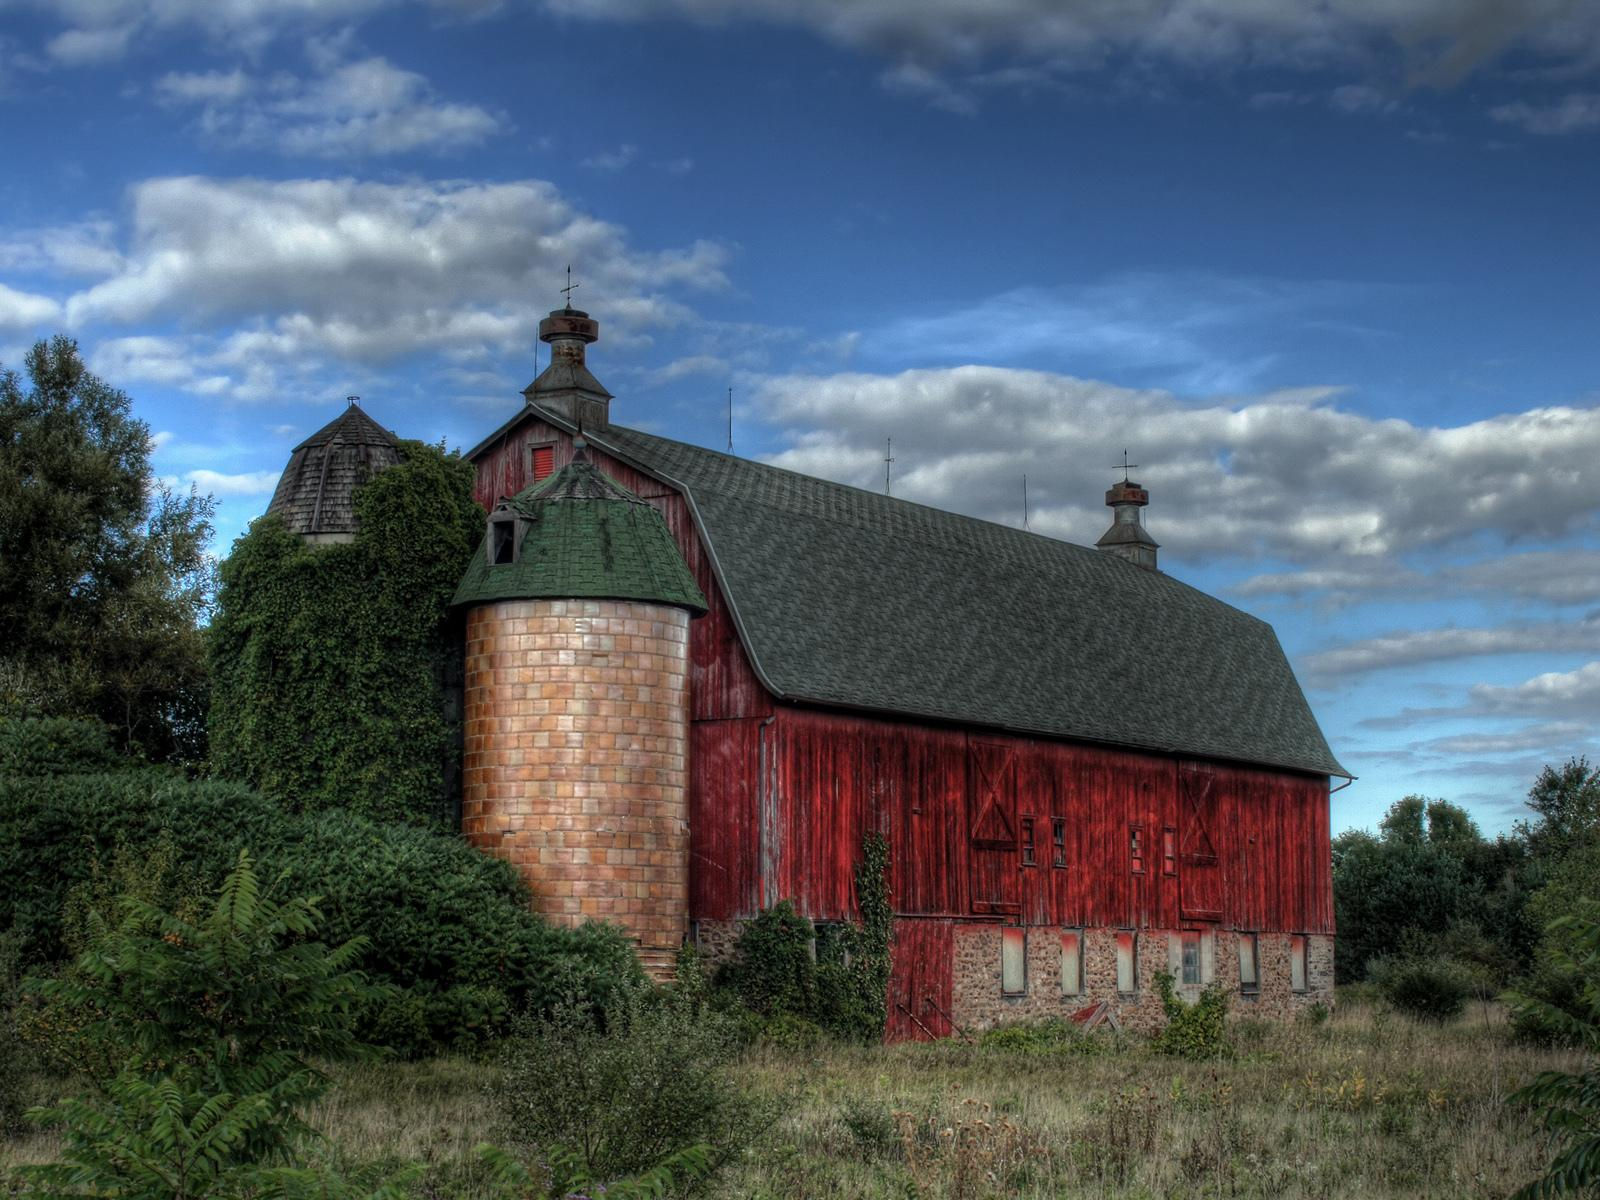 Barn wallpapers HD quality